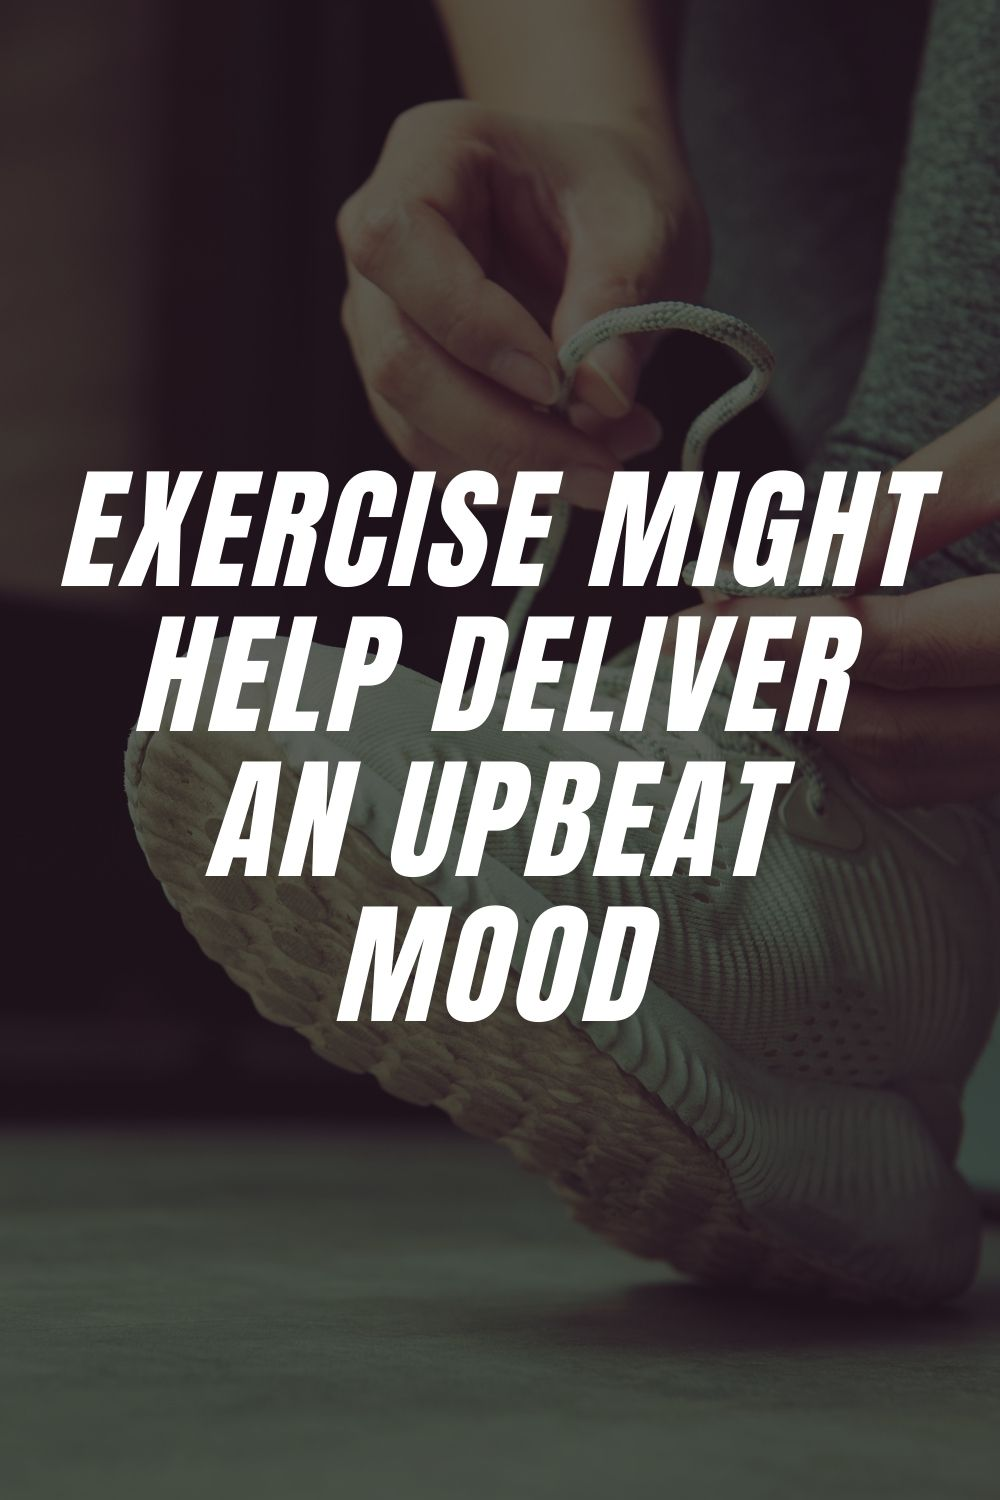 Exercise Might Help Deliver an Upbeat Mood